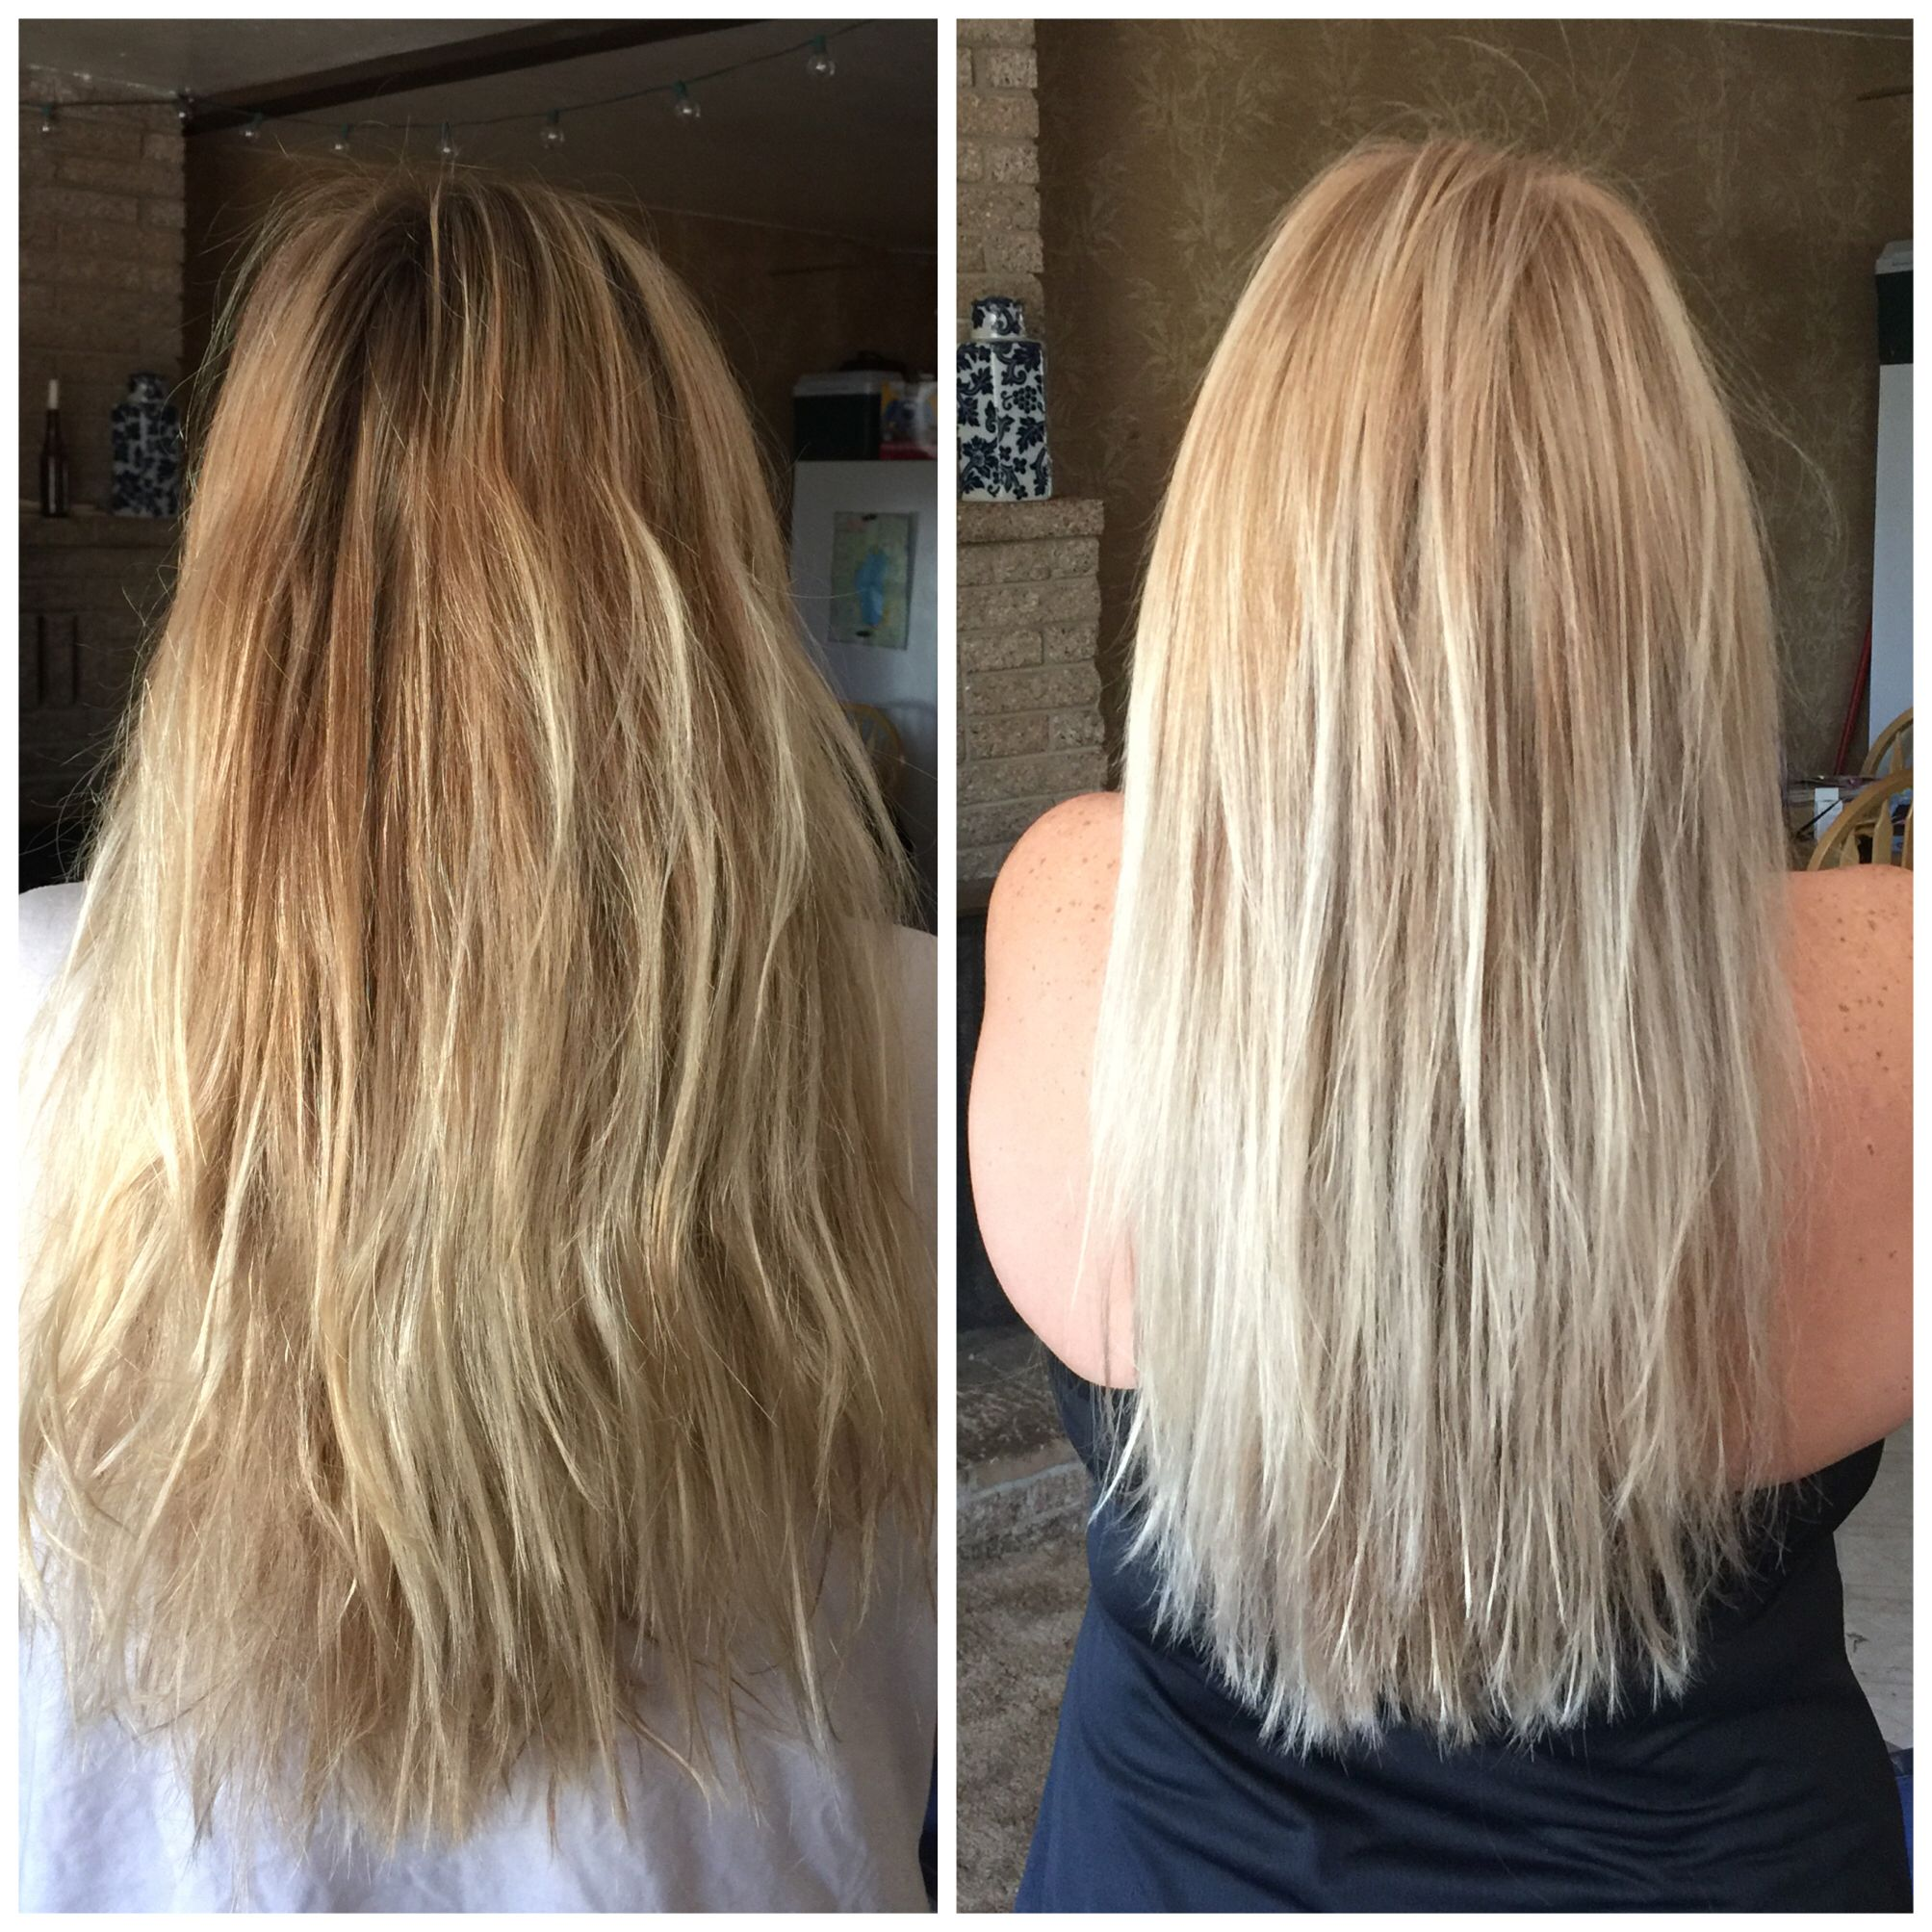 Before And After Toning My Own Hair With Wella Toner T18 And Volume 20 Ion Scalp Sensitive Developer Wella Toner Toner For Brown Hair Wella Hair Toner